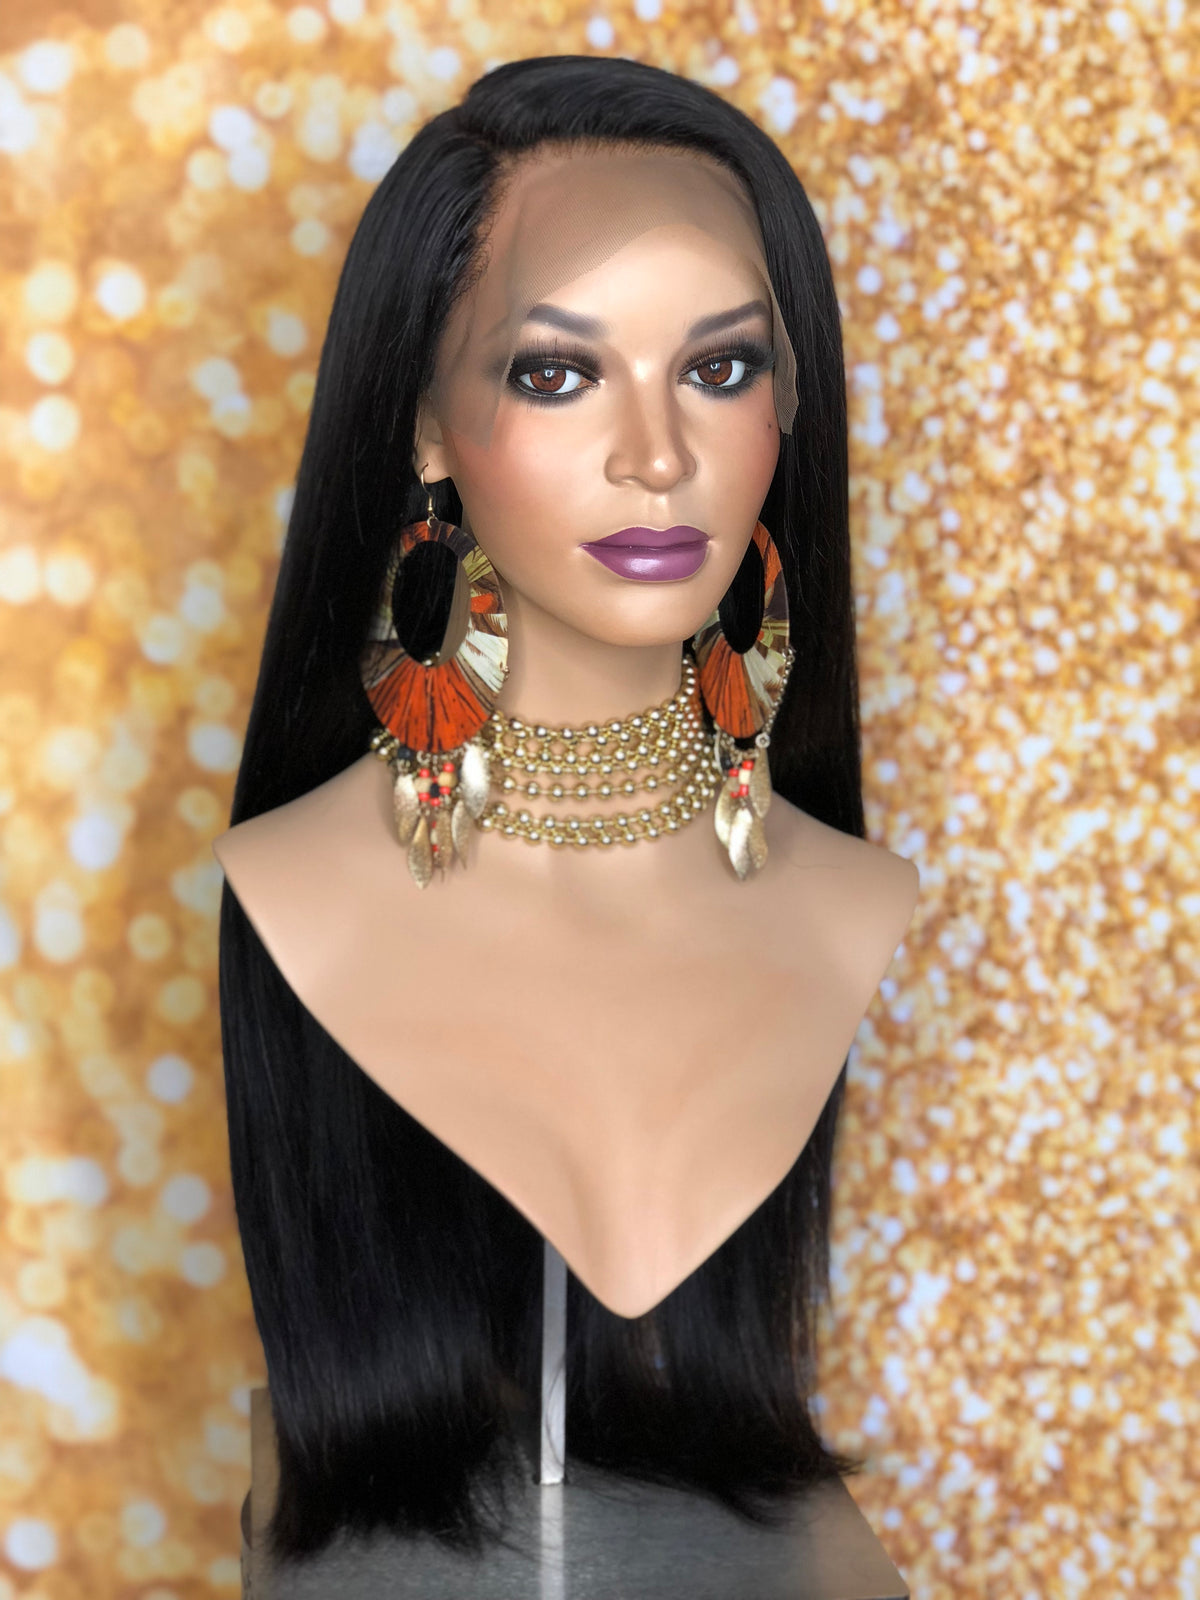 TreBella Wigs 20in frontal unit - TreBella Wigs